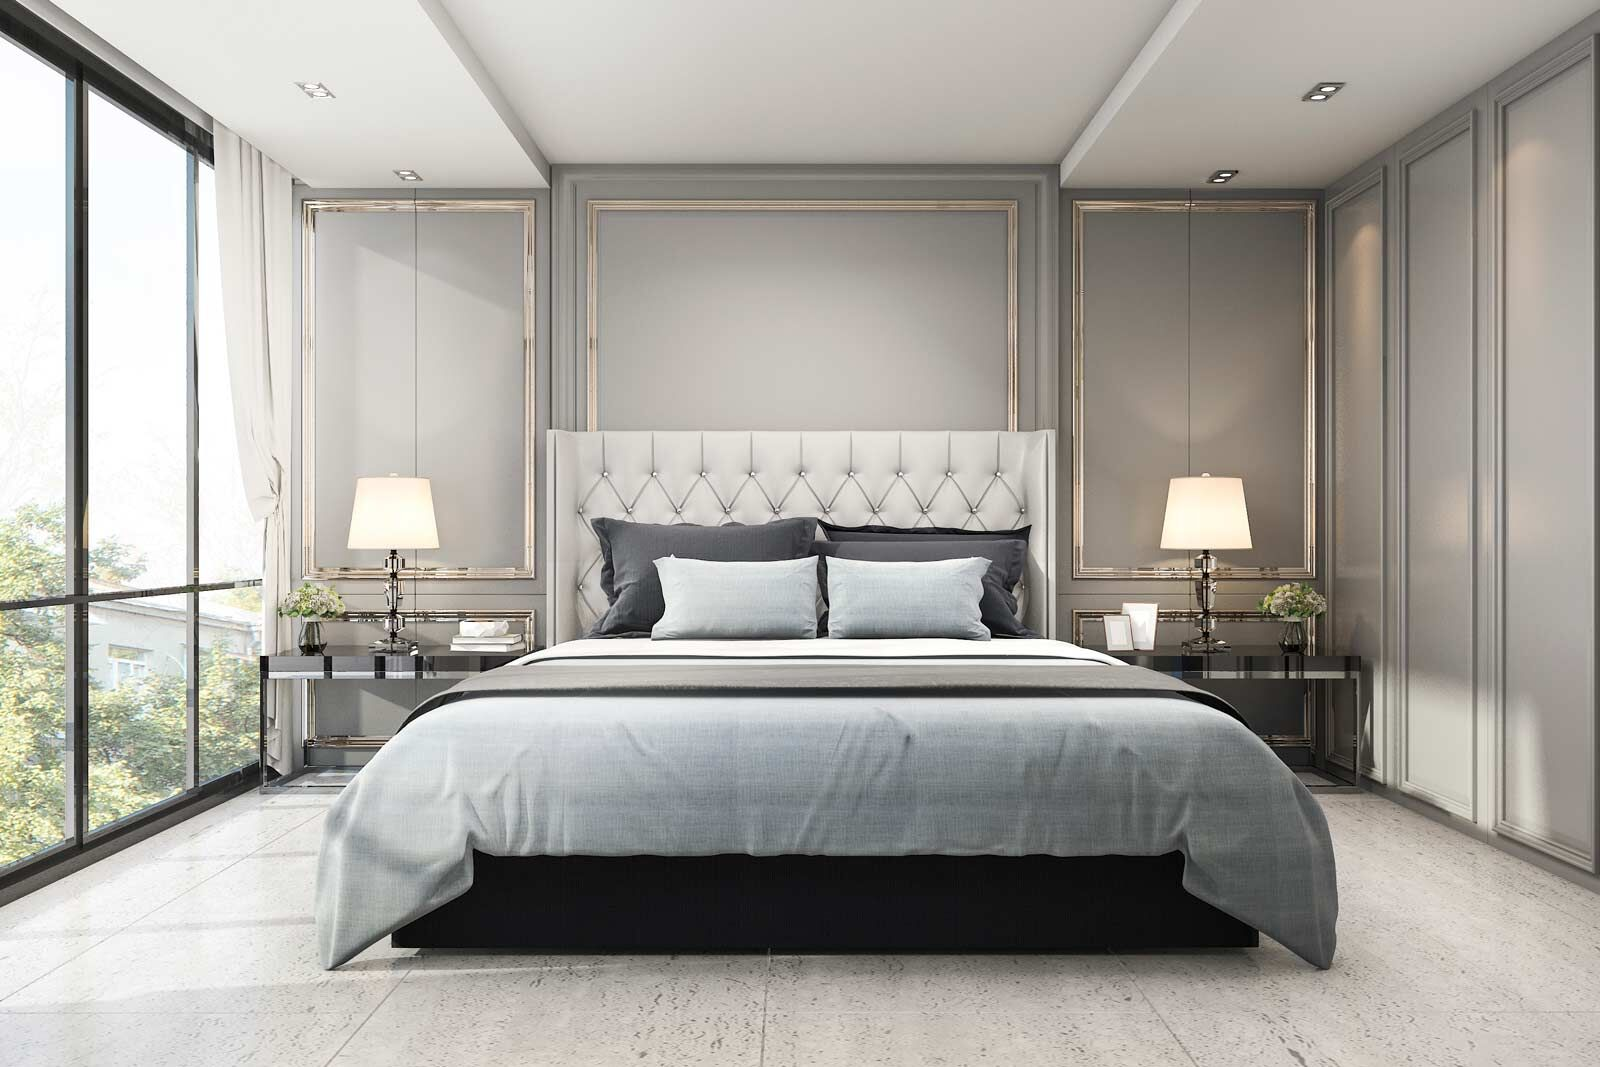 Luxury Bedroom Home Interior Design